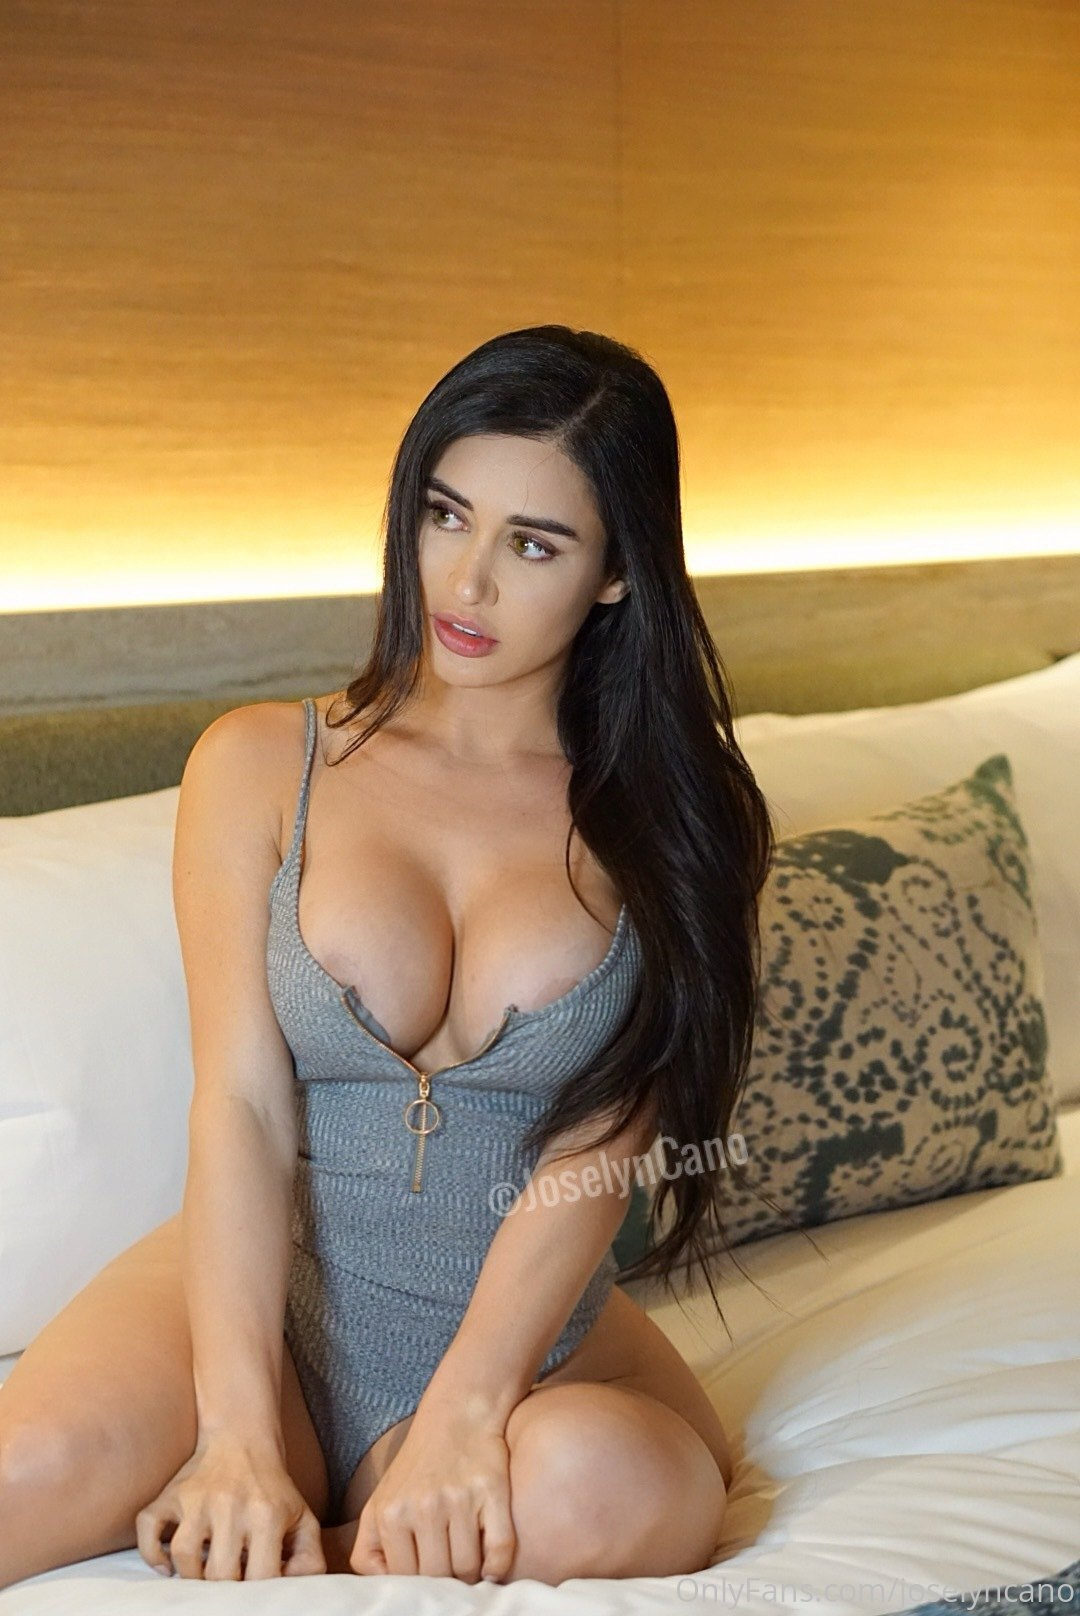 Joselyn Cano Onlyfans 0025